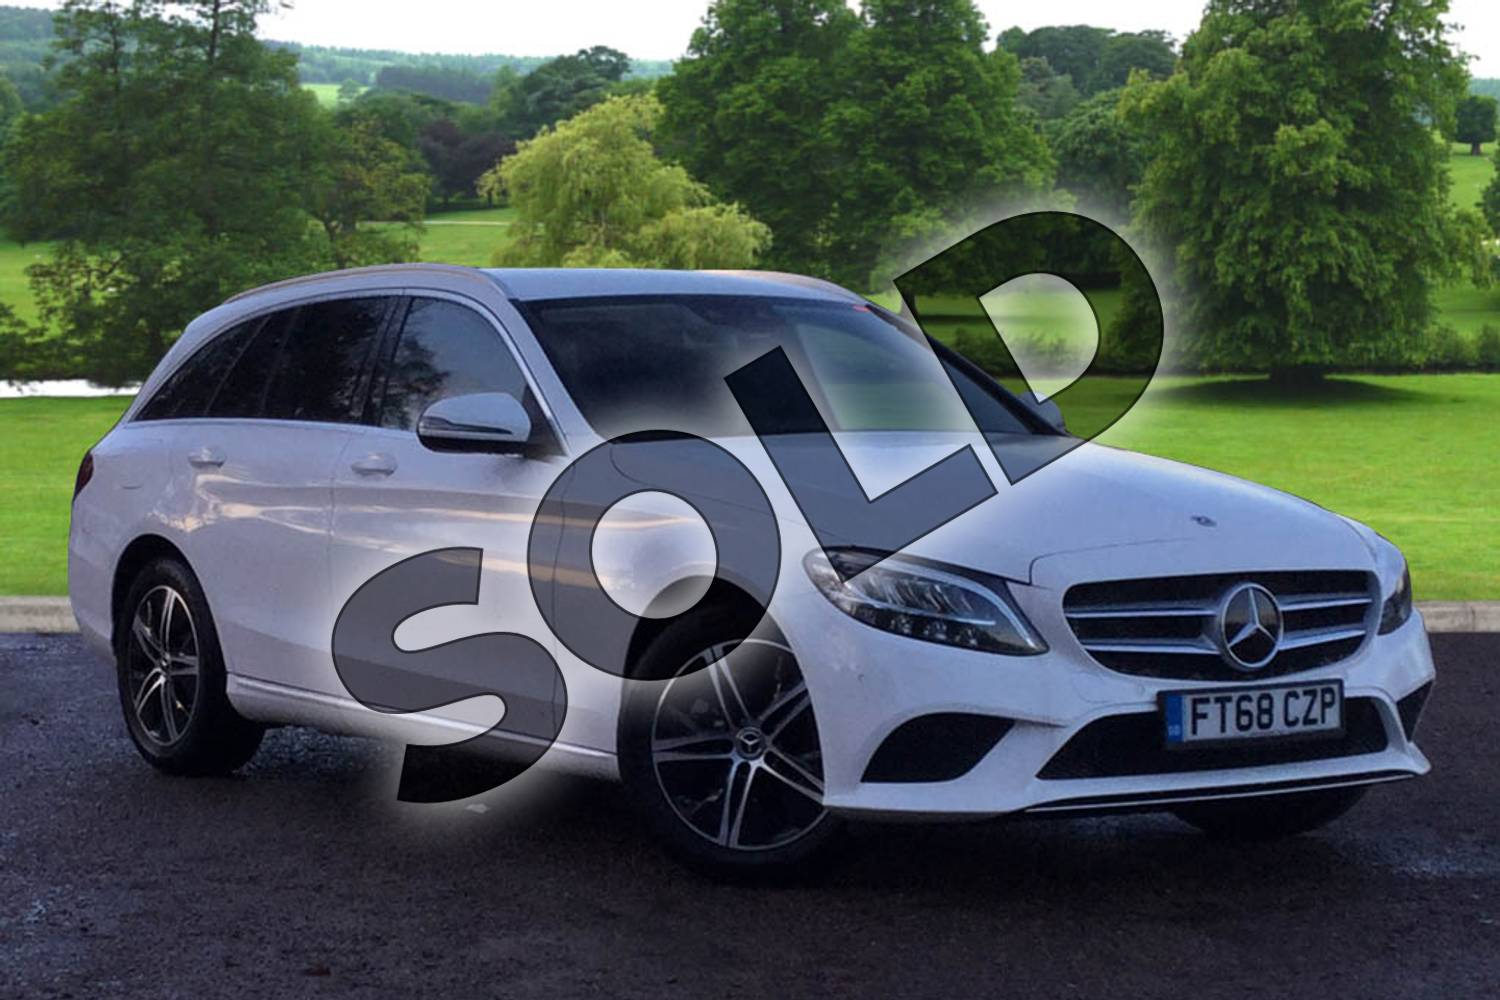 2018 Mercedes-Benz C Class Estate C200 Sport 5dr 9G-Tronic in polar white at Mercedes-Benz of Grimsby